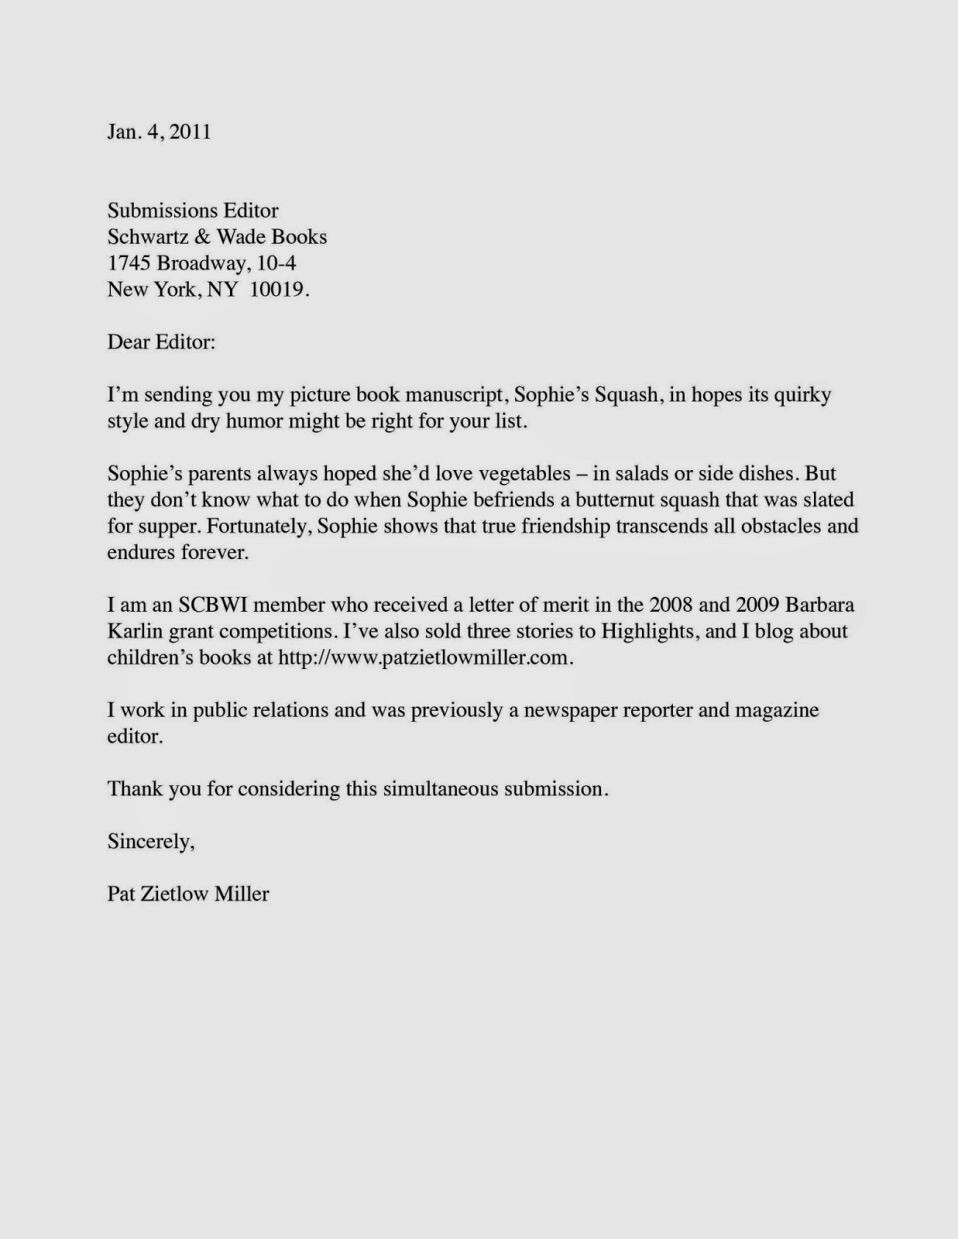 Cover Letter with Picture Template Luxury Cover Letter Short and Sweet Resume Template